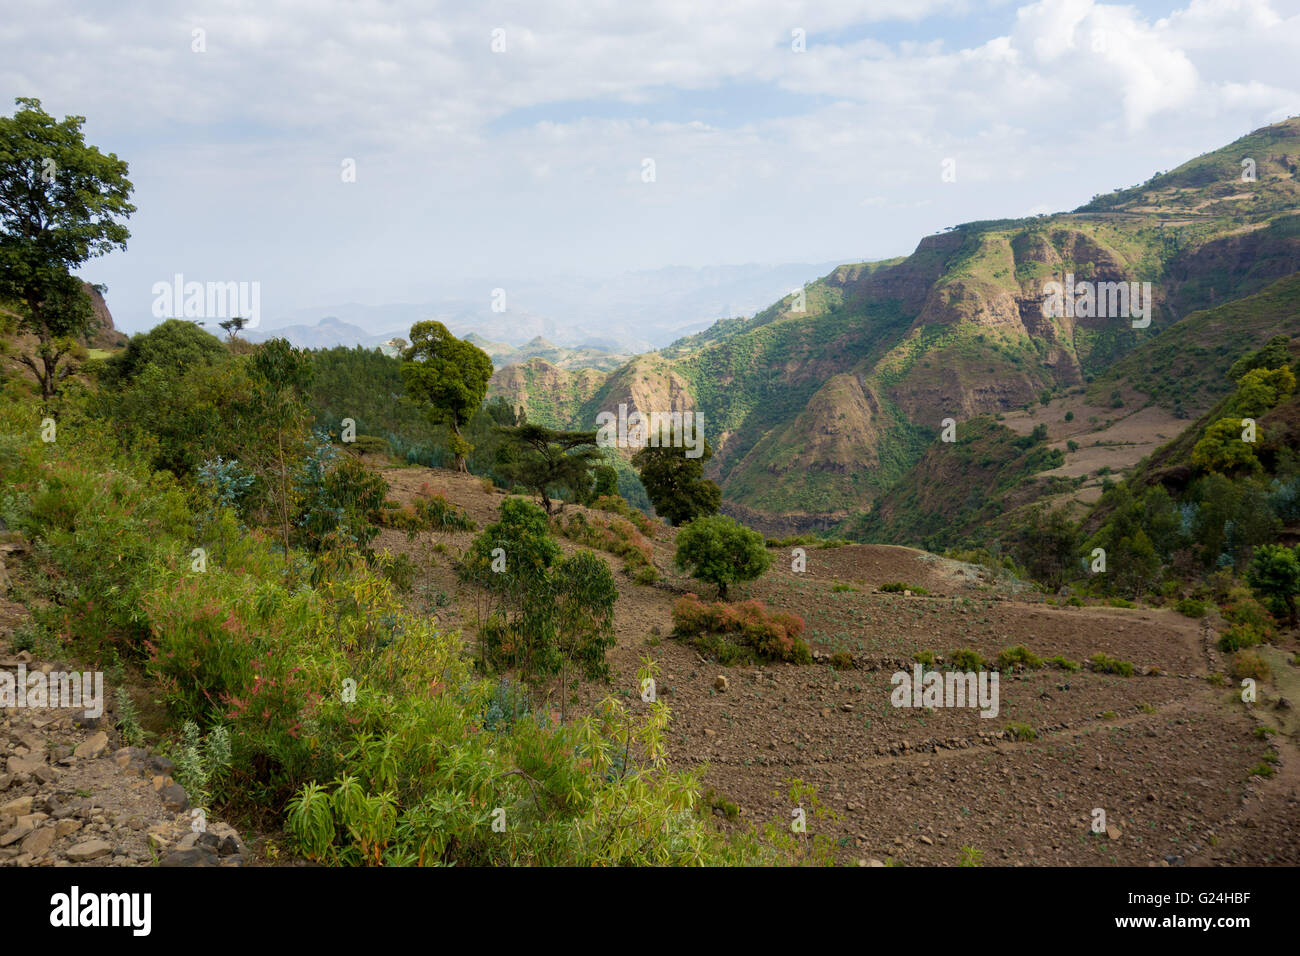 Overlooking a valley in the Simien Mountains National Park, Amhara Region, Ethiopia - Stock Image